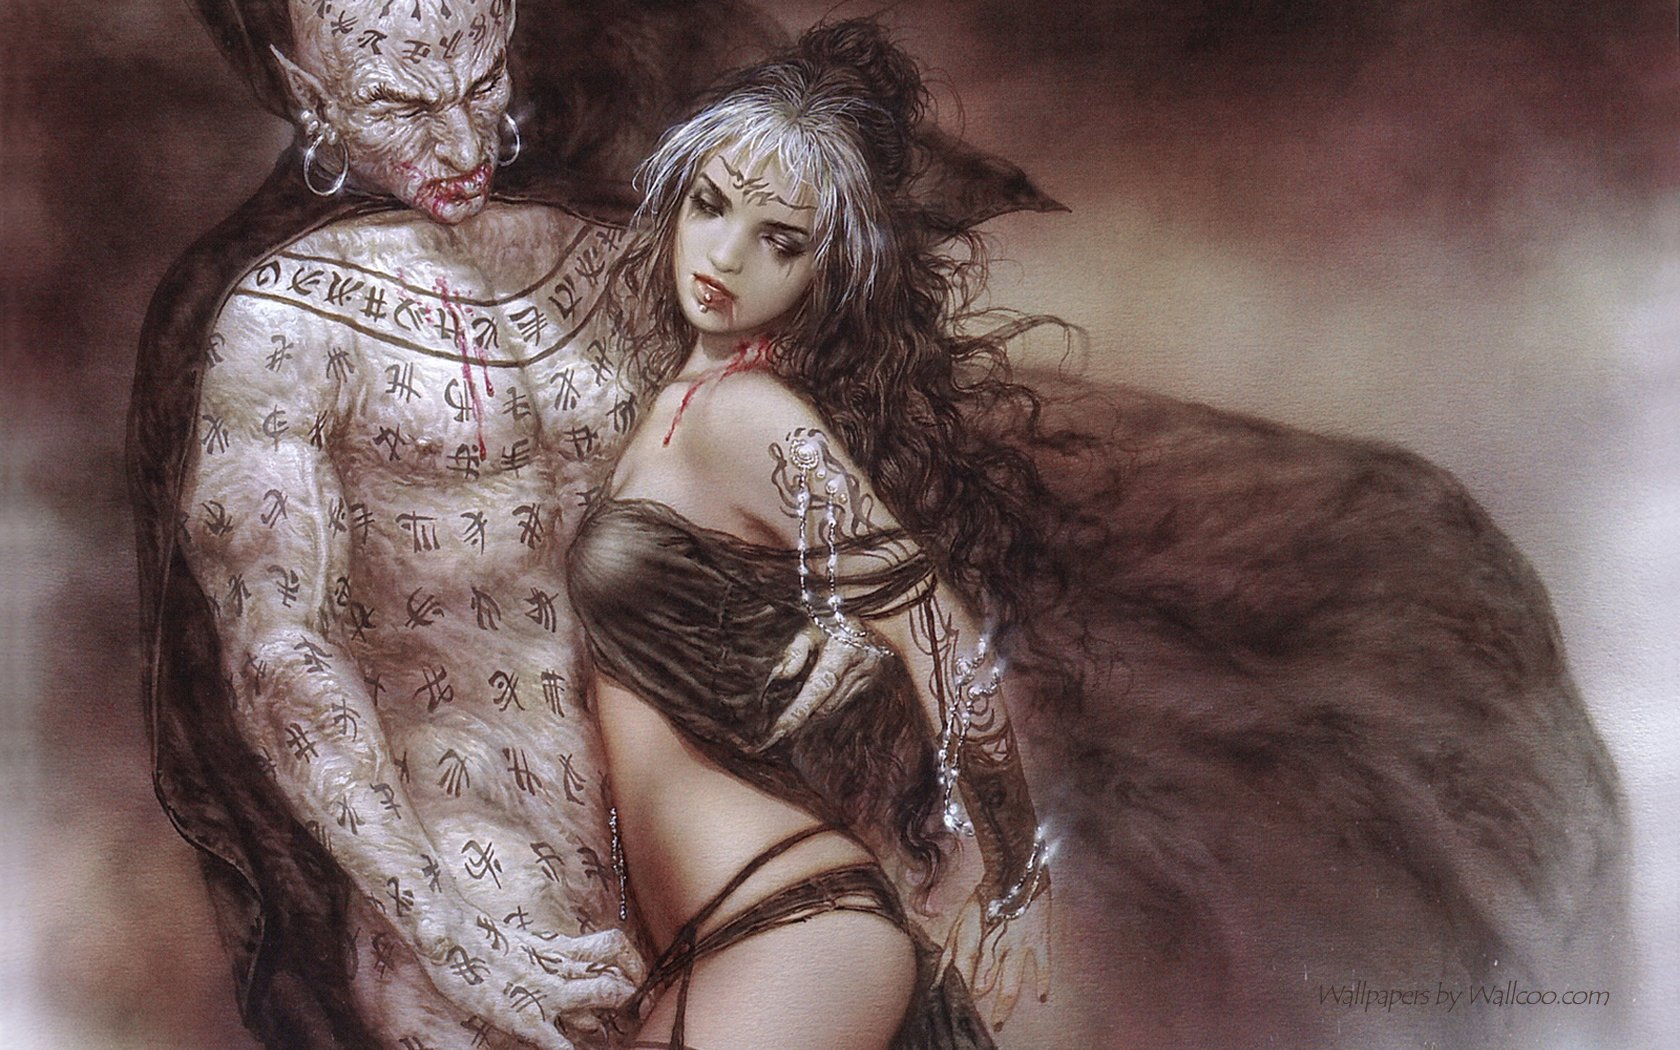 Words... super, luis royo heavy metal think, that